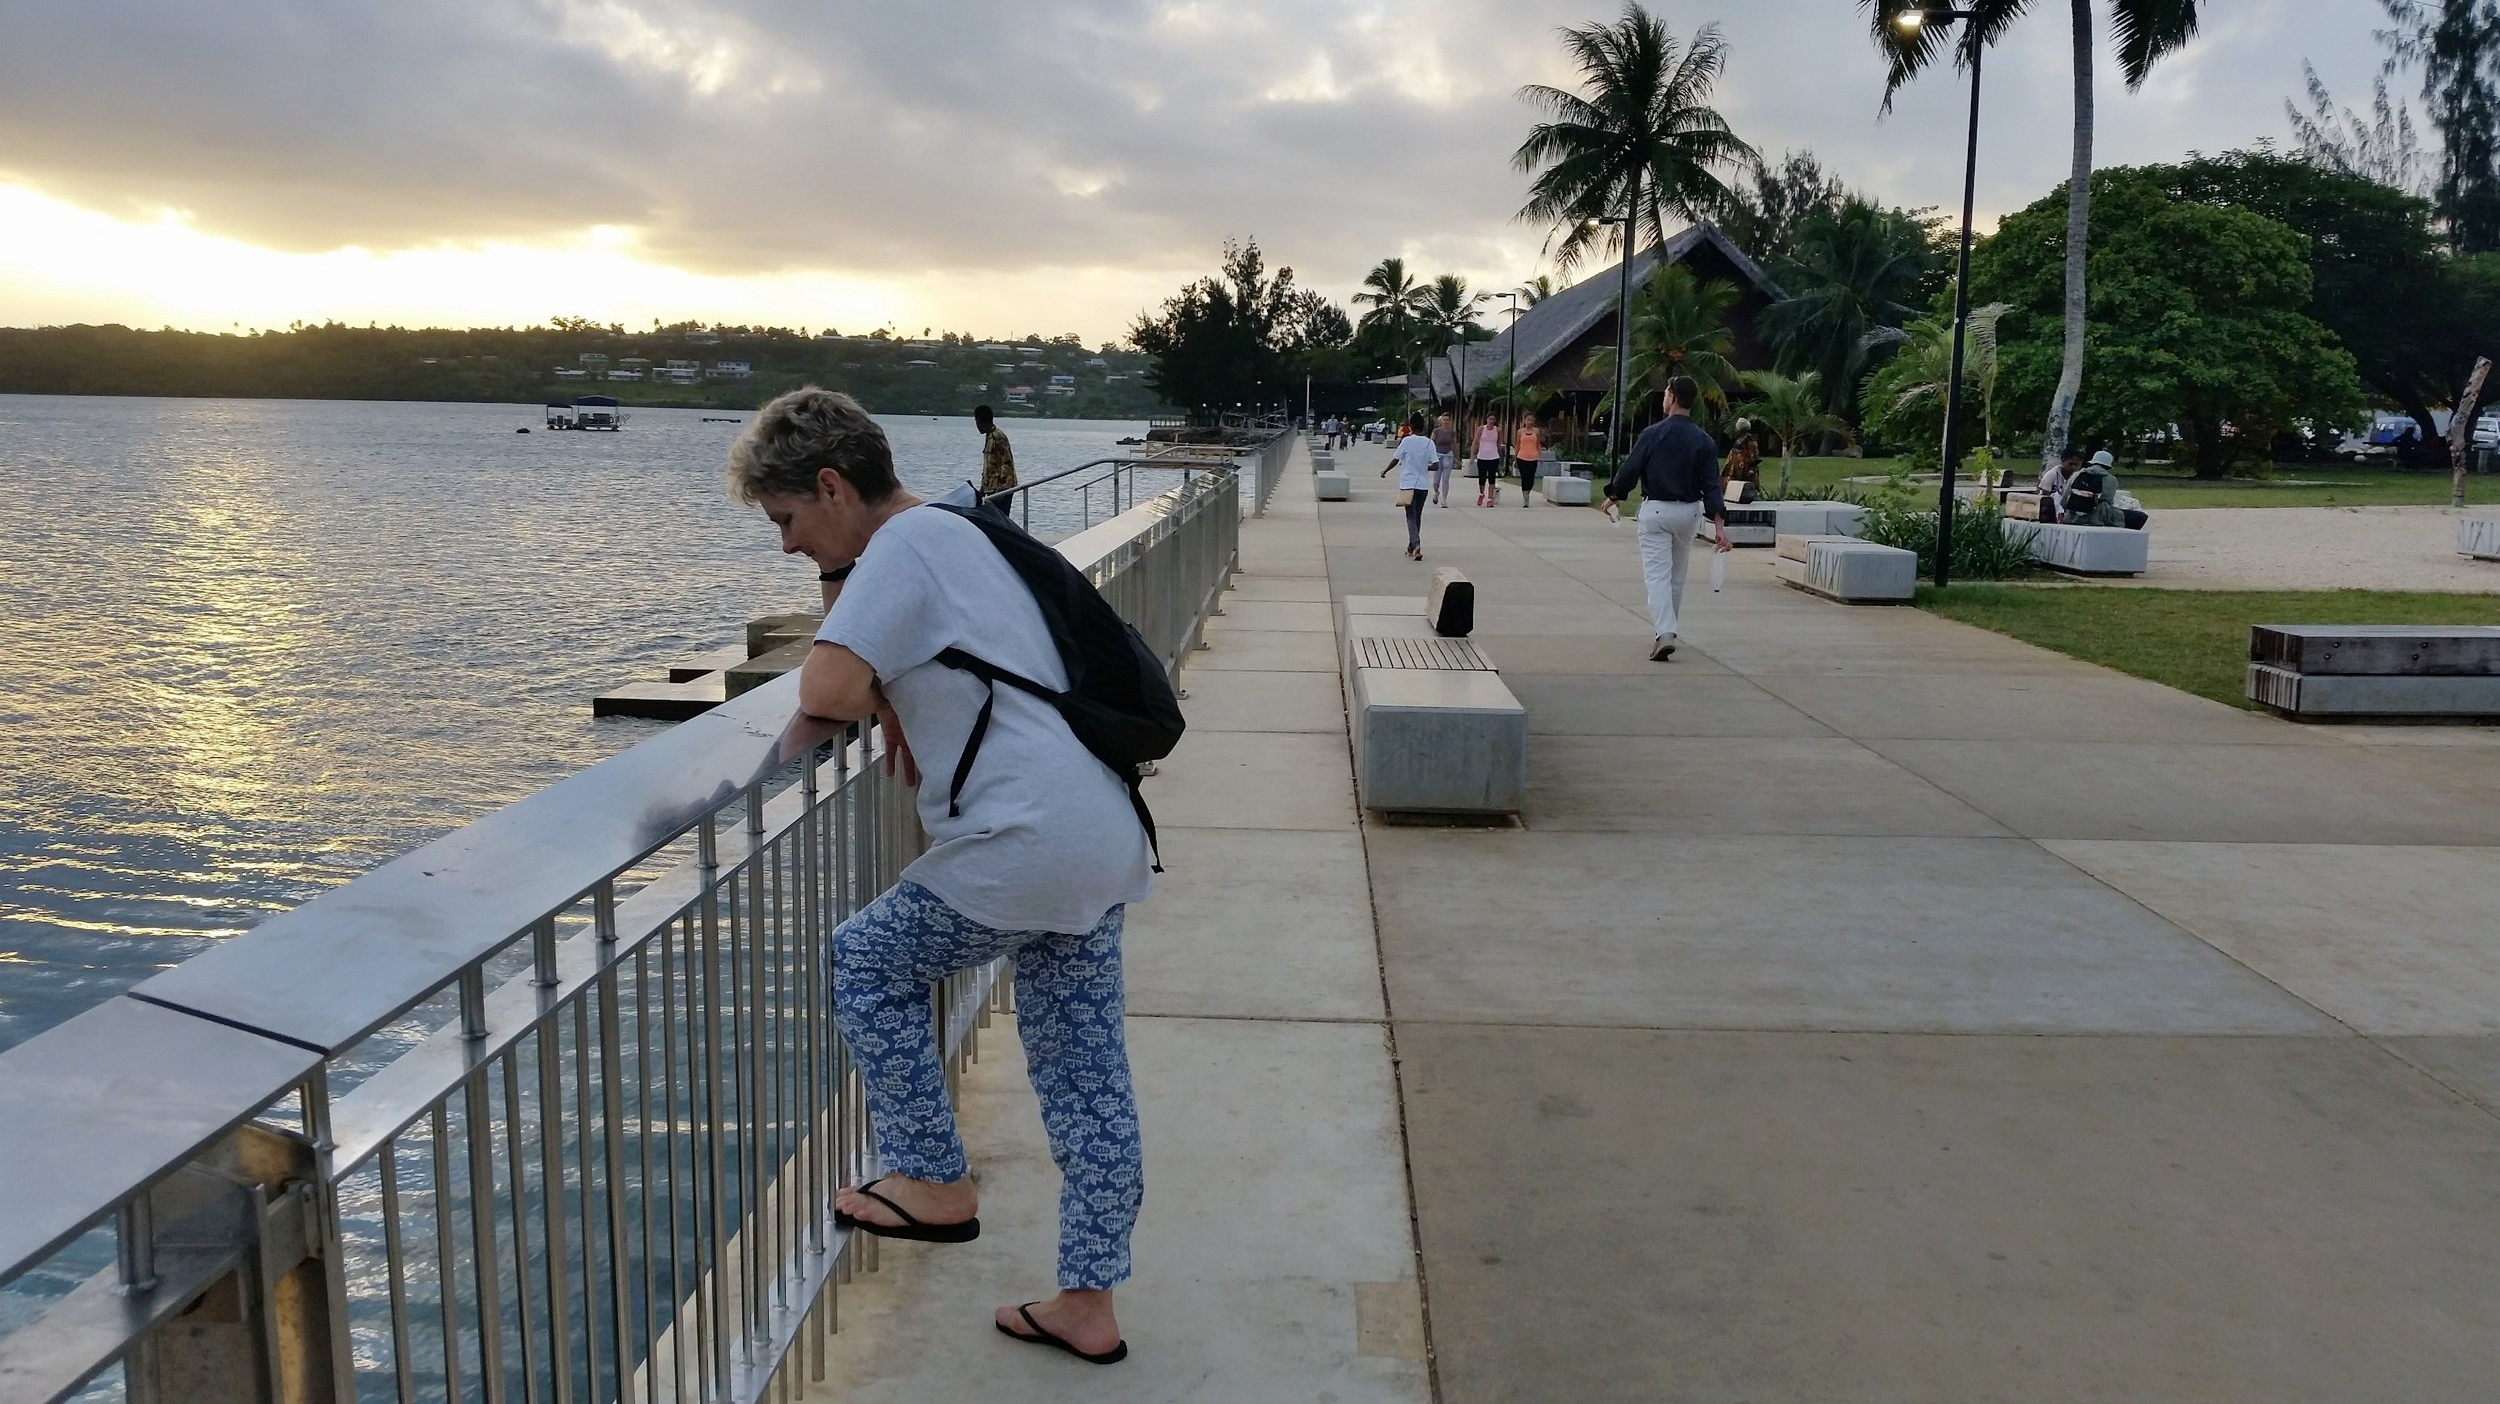 the promenade in port vila